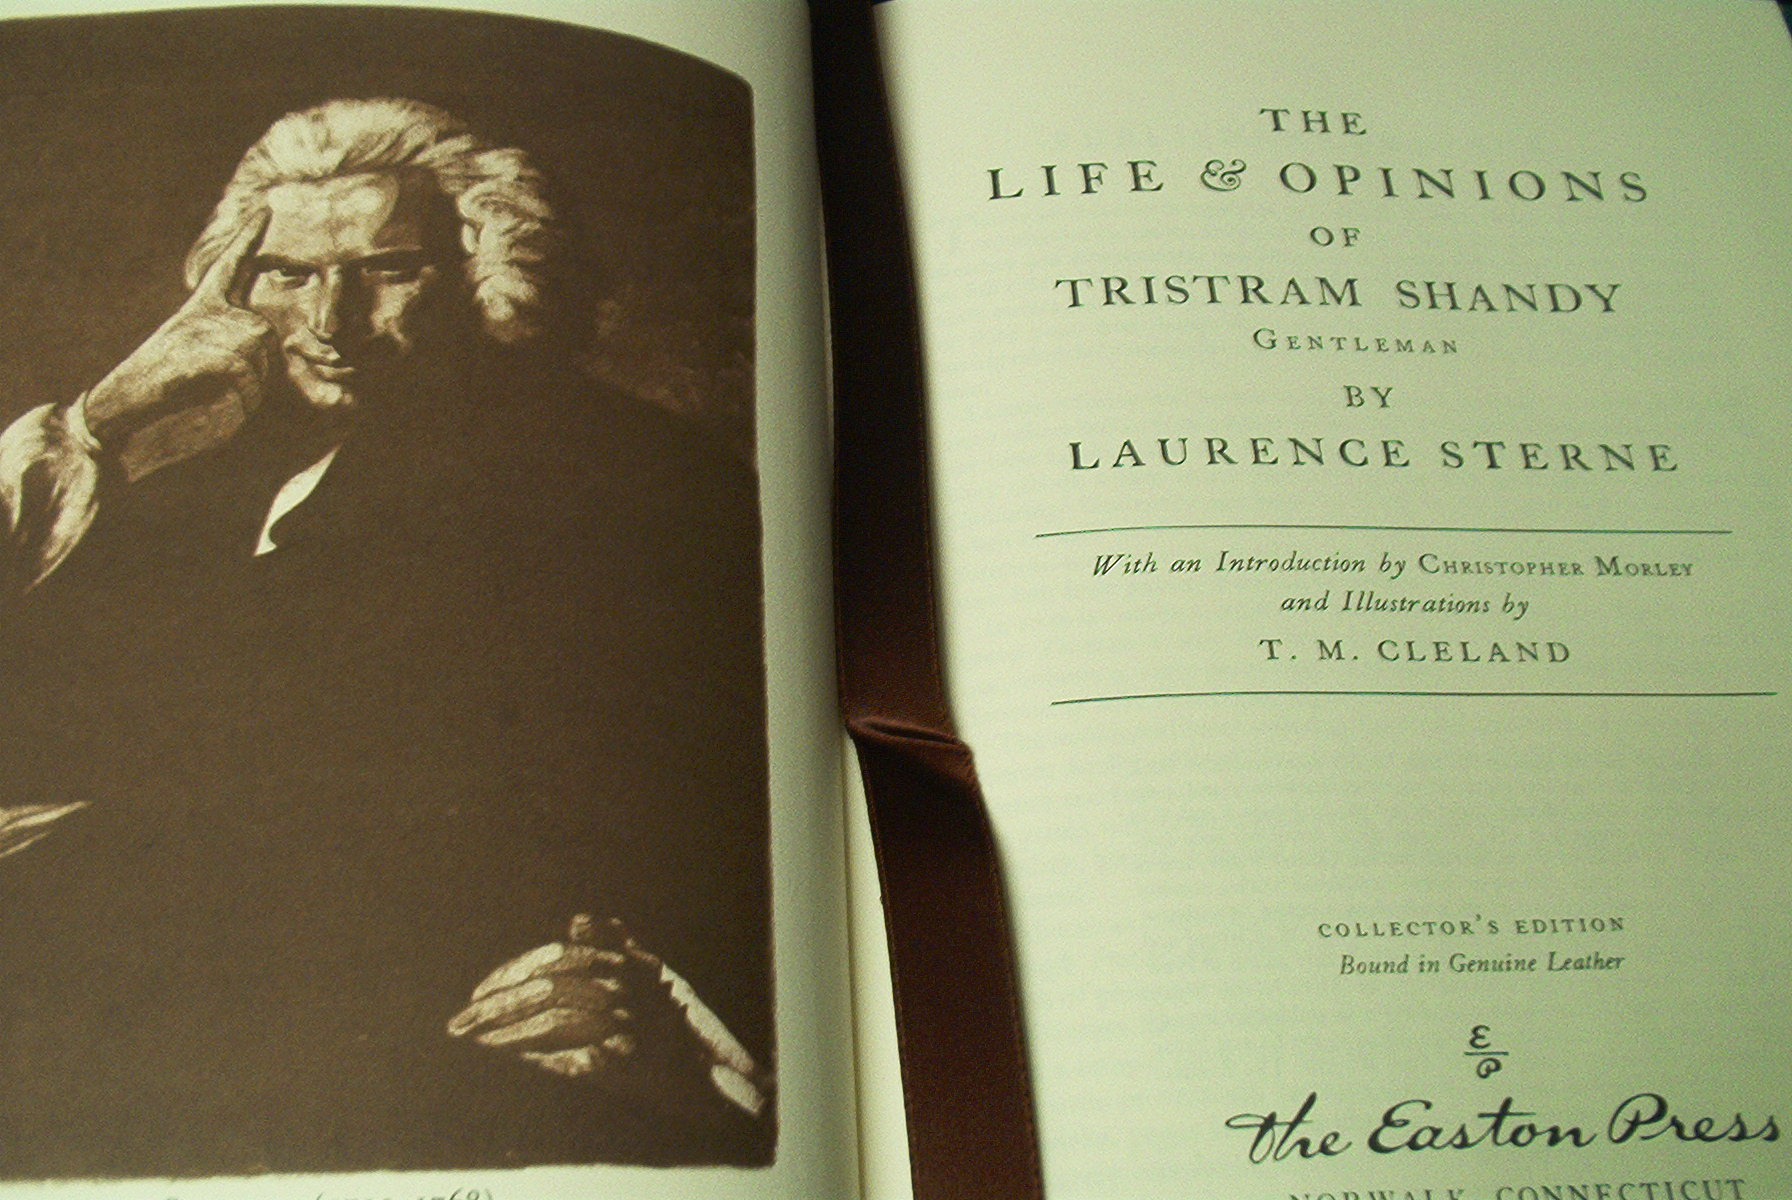 The Life & Opinions of Tristram Shandy